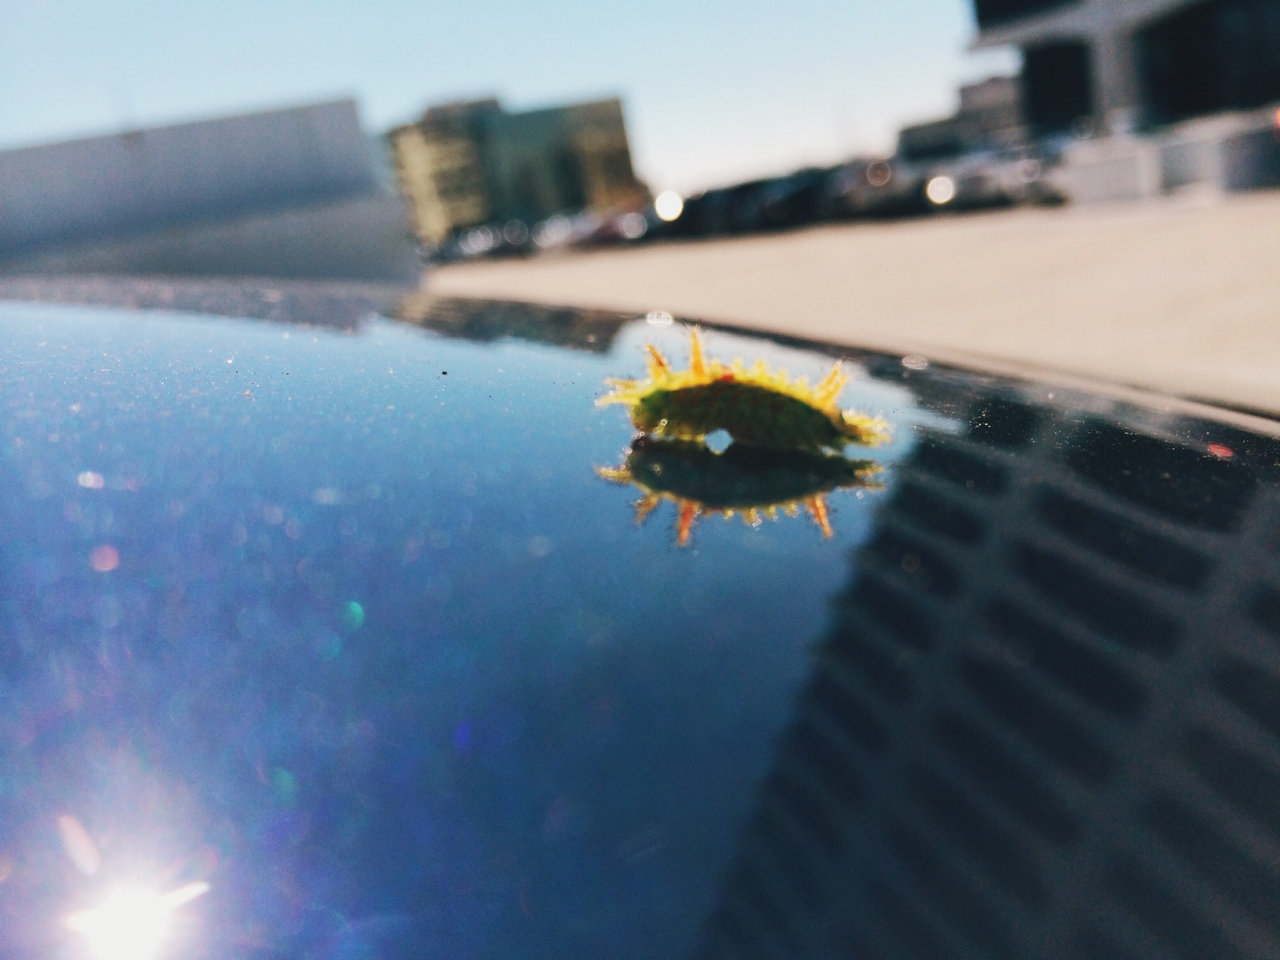 there was a pal on my car earlier today…